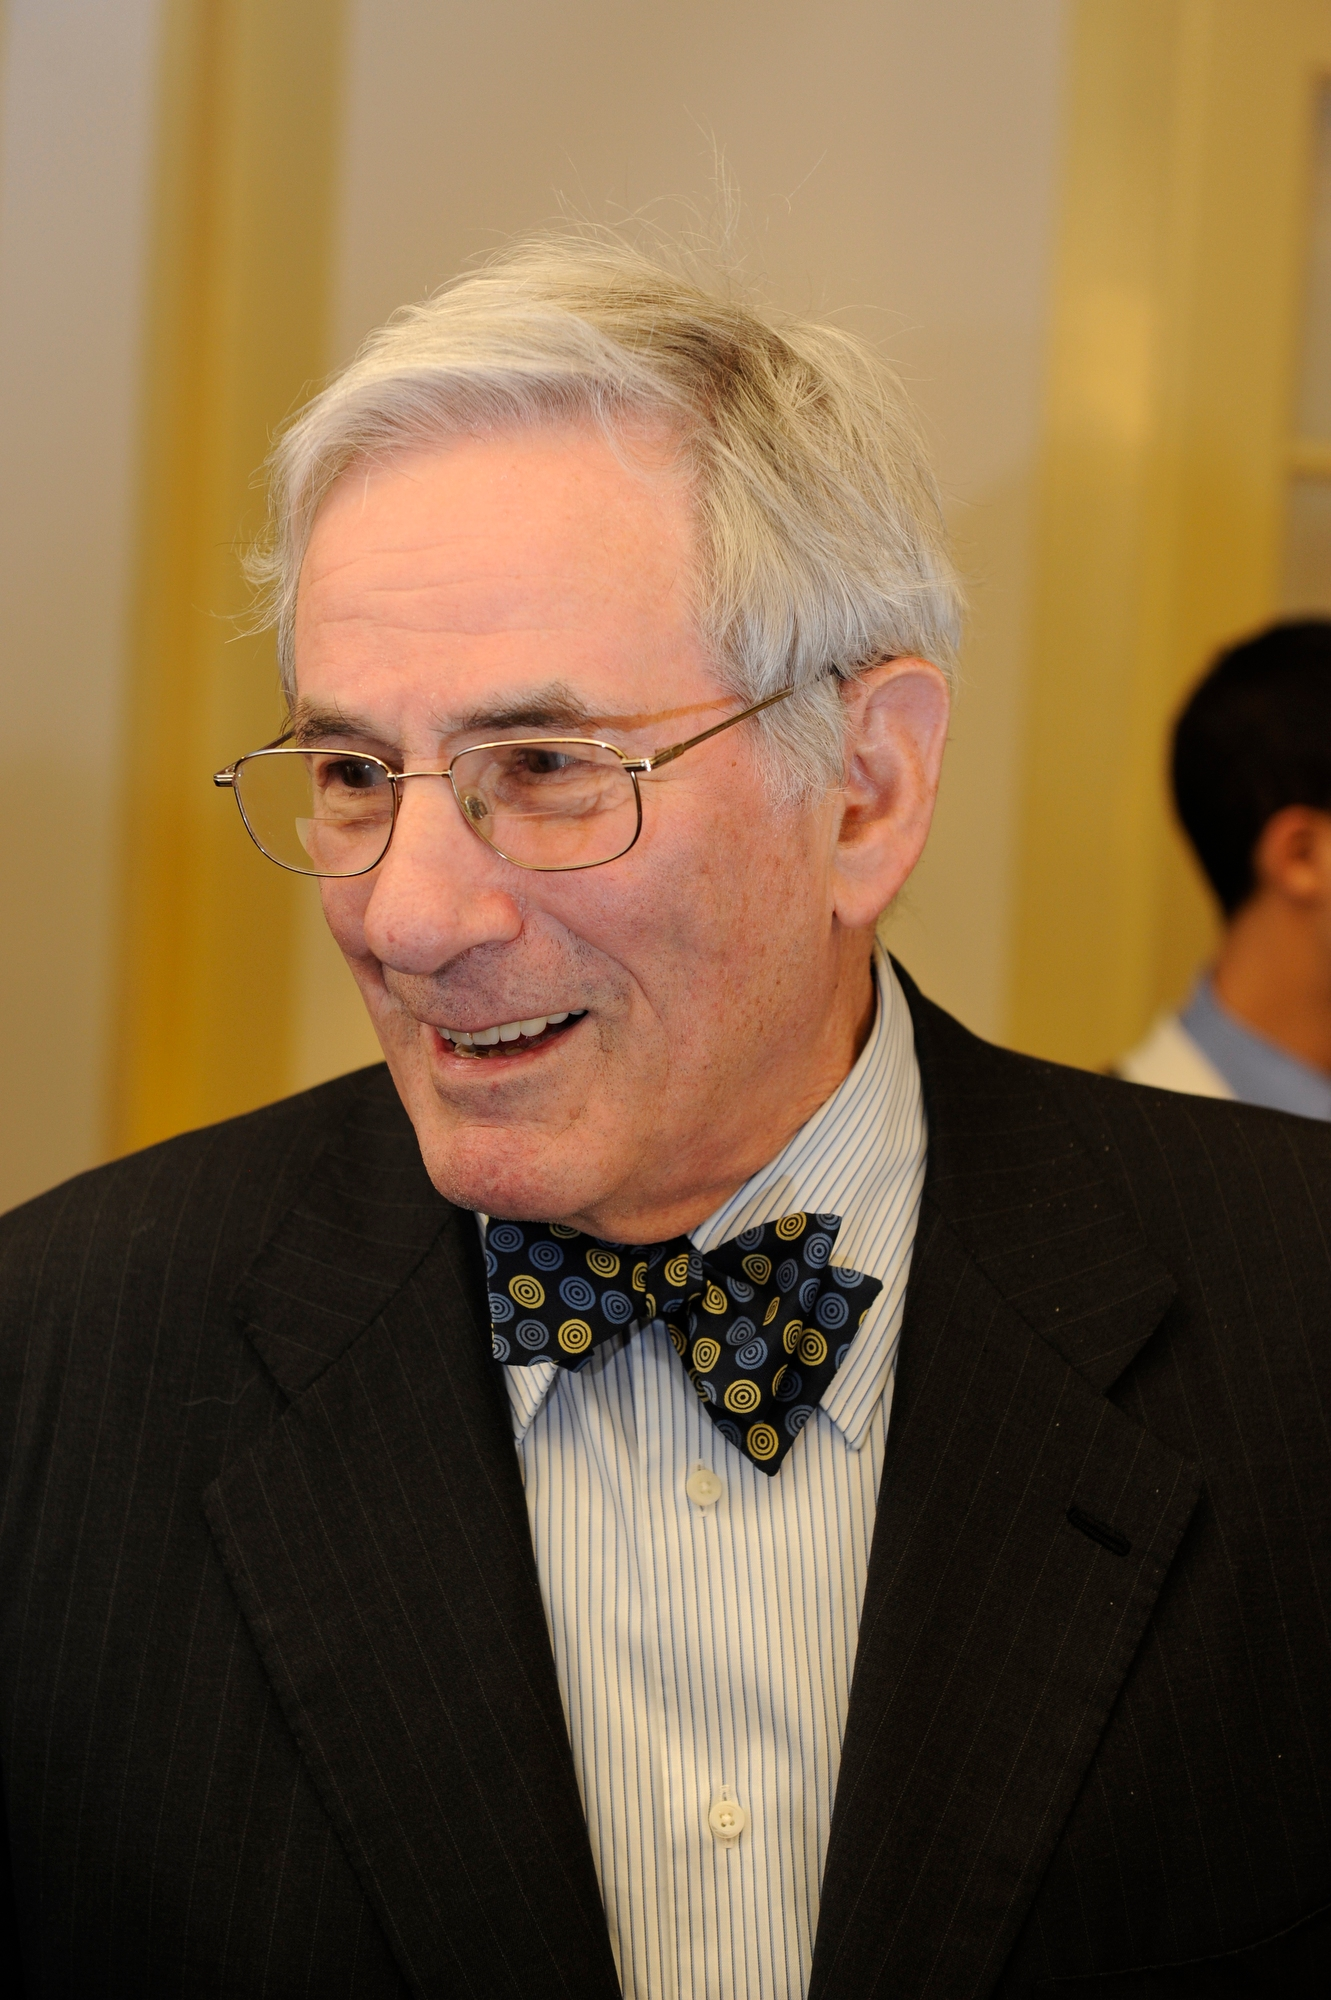 Richard Gilder at the Frederick Douglass Book Prize Ceremony in 2011